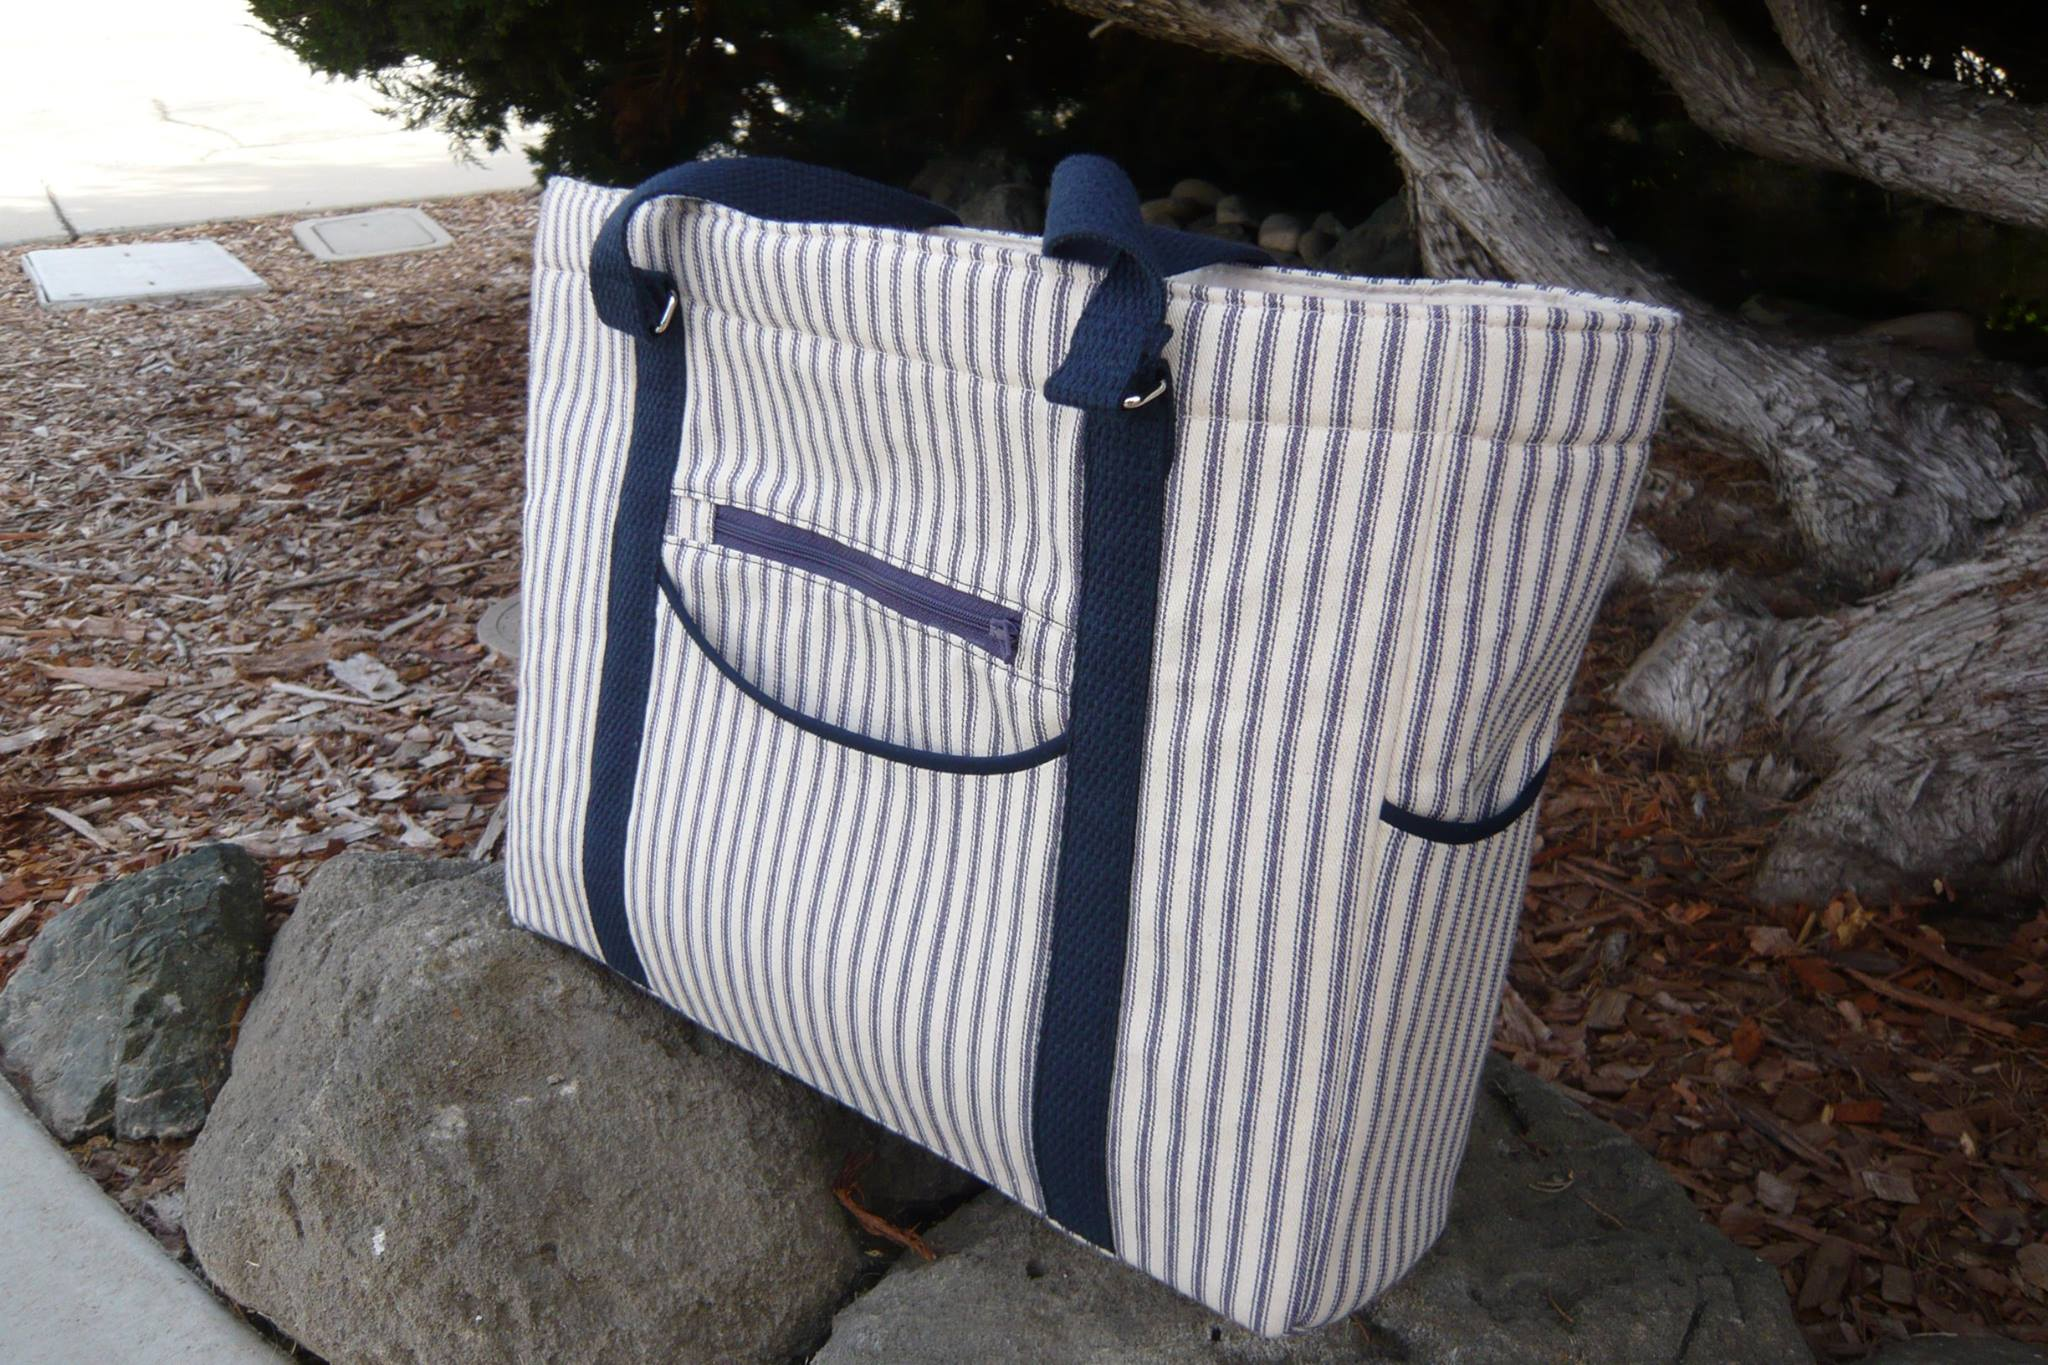 This tote is stylish and ready for a day of adventure!